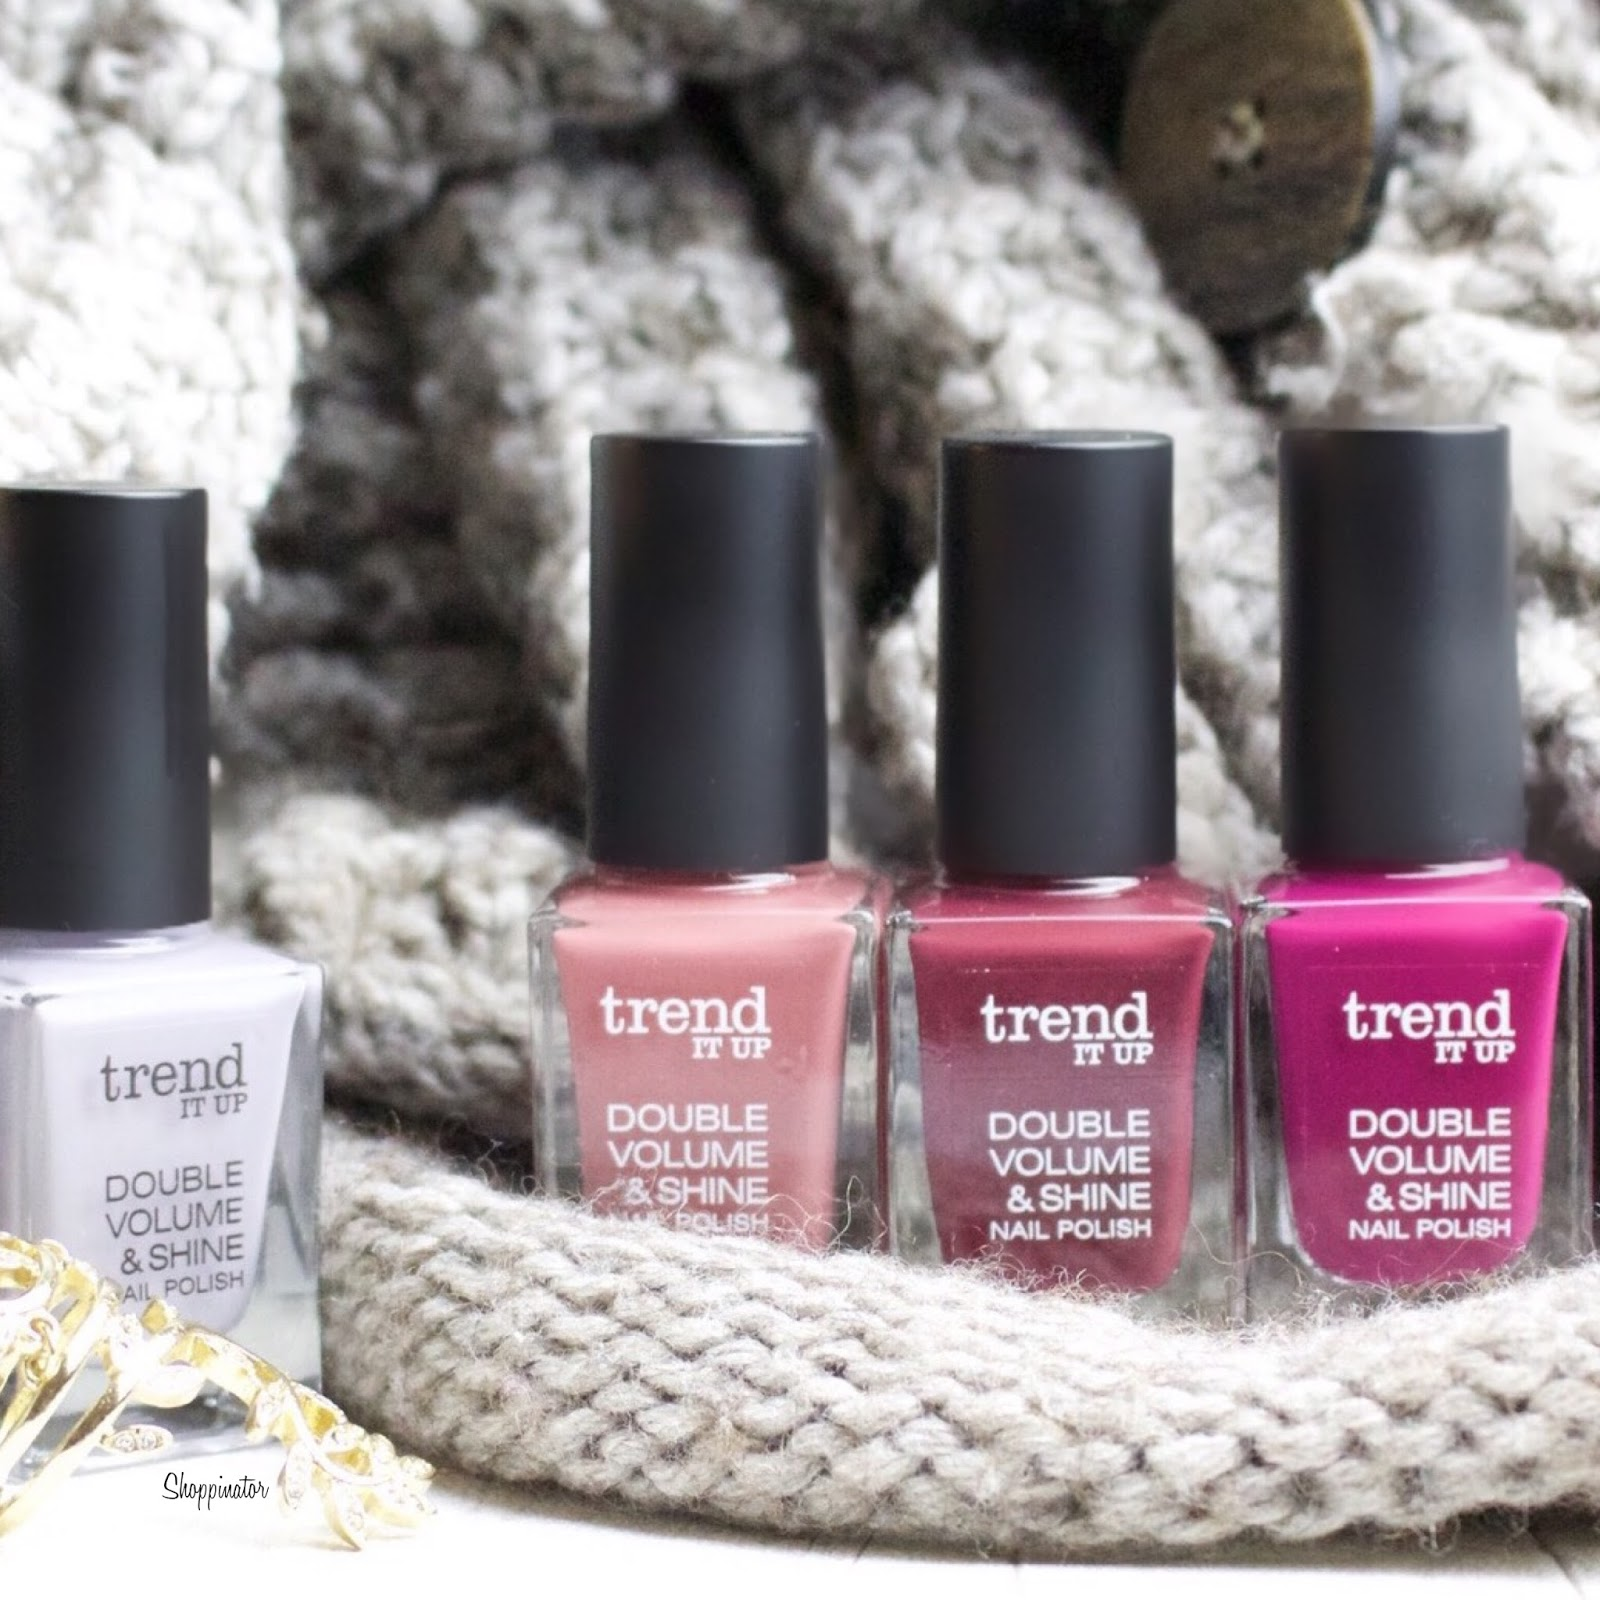 DM Eigenmarke \'Trend it up\' - Nagellack Swatches + Review - Shoppinators